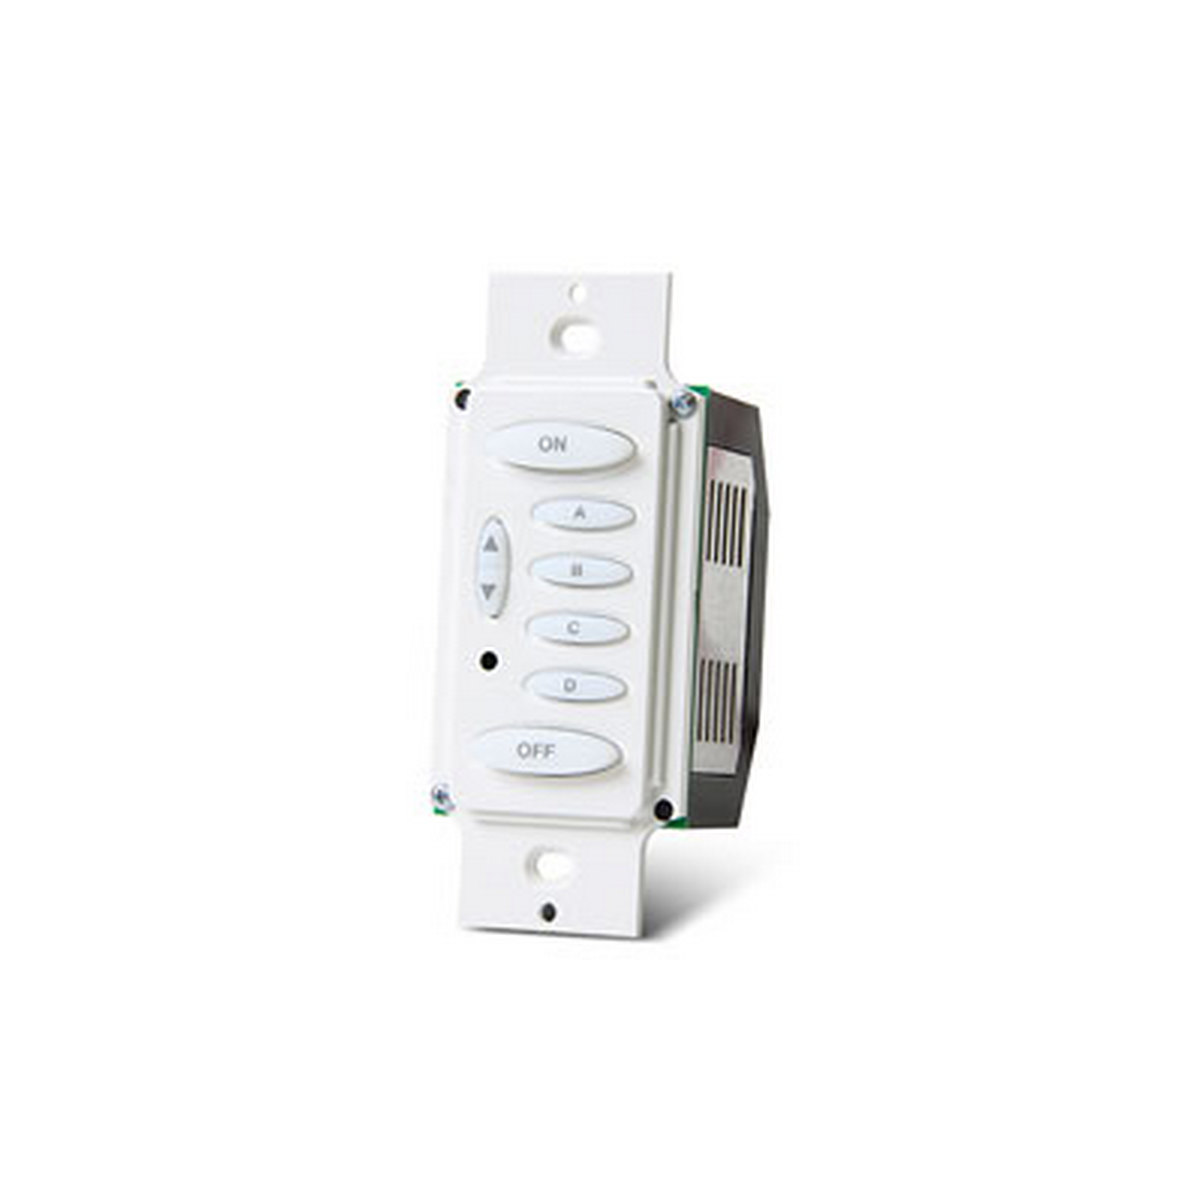 Keypad Controller, Load Dimmer, 400W Max, 6 Button